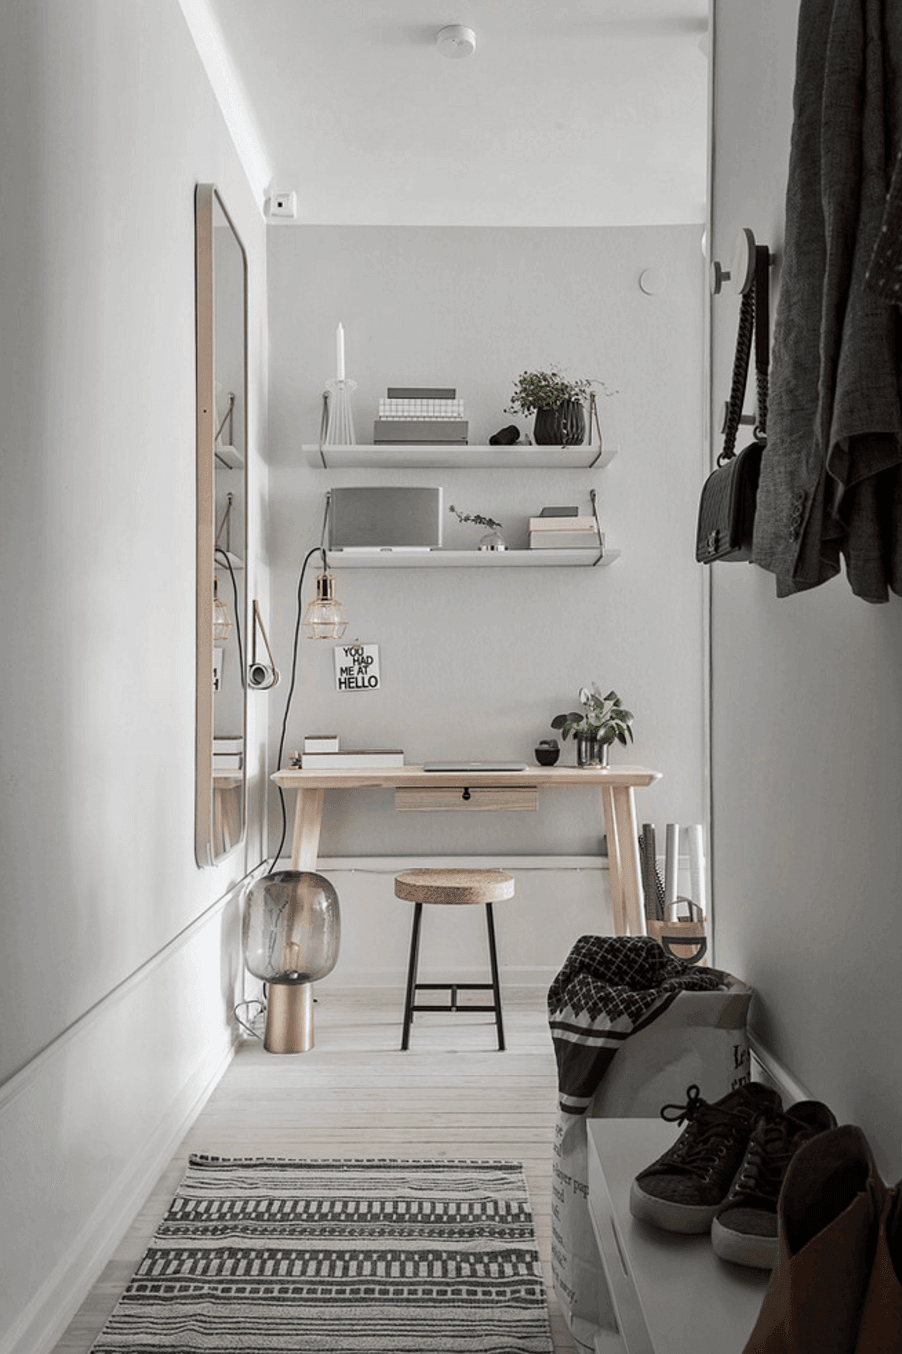 Scandinavian Interior Design - Scandinavian Interior Design 11